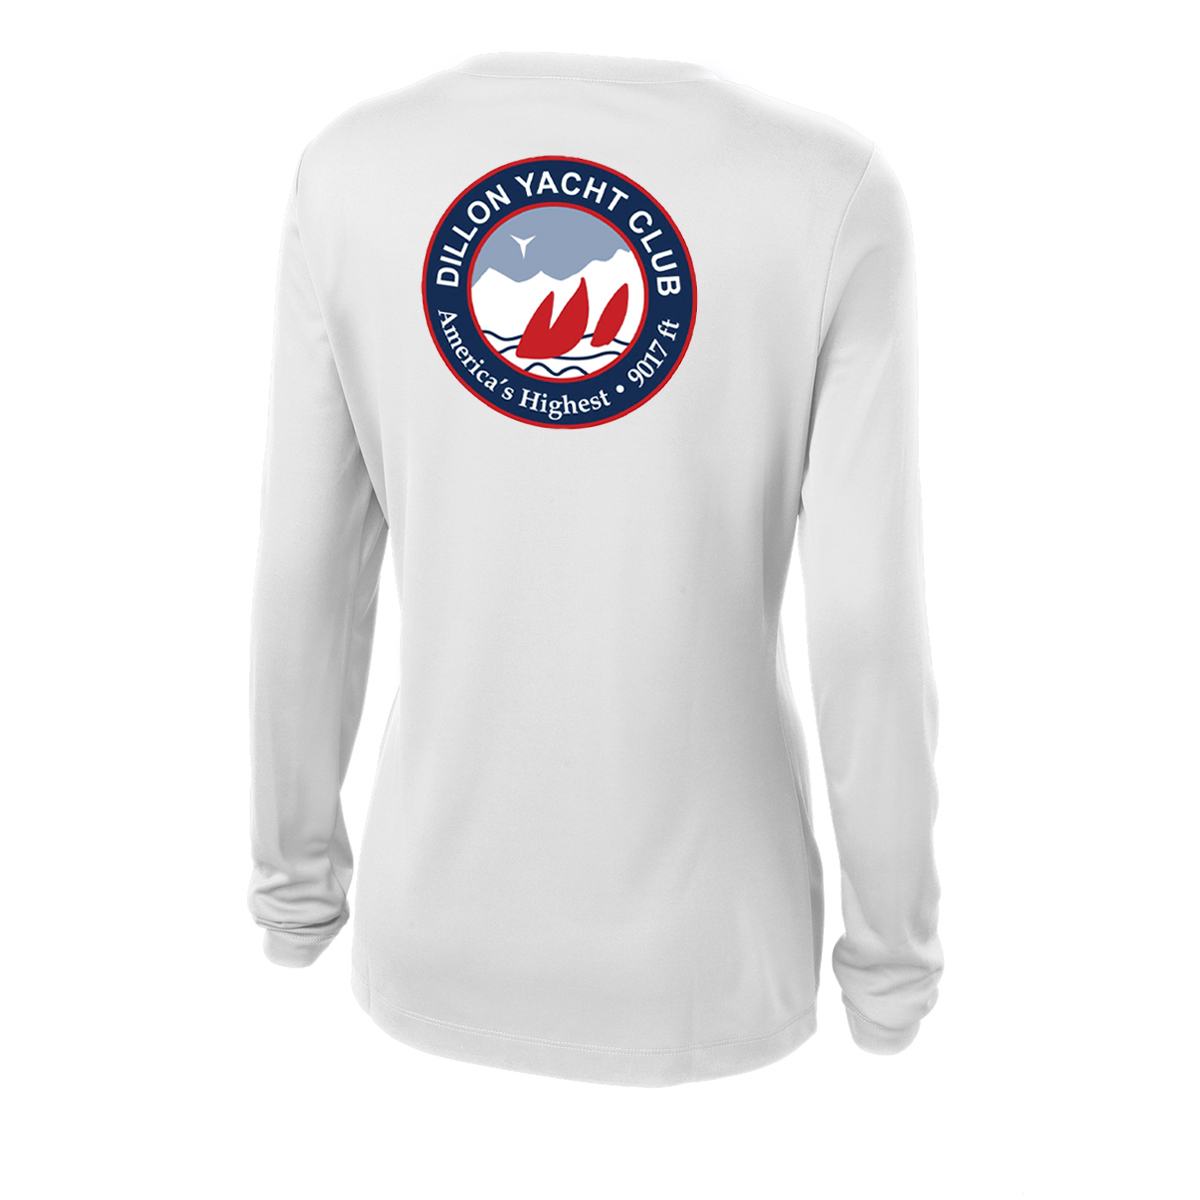 Dillon Yacht Club - Women's L/S TECH TEE